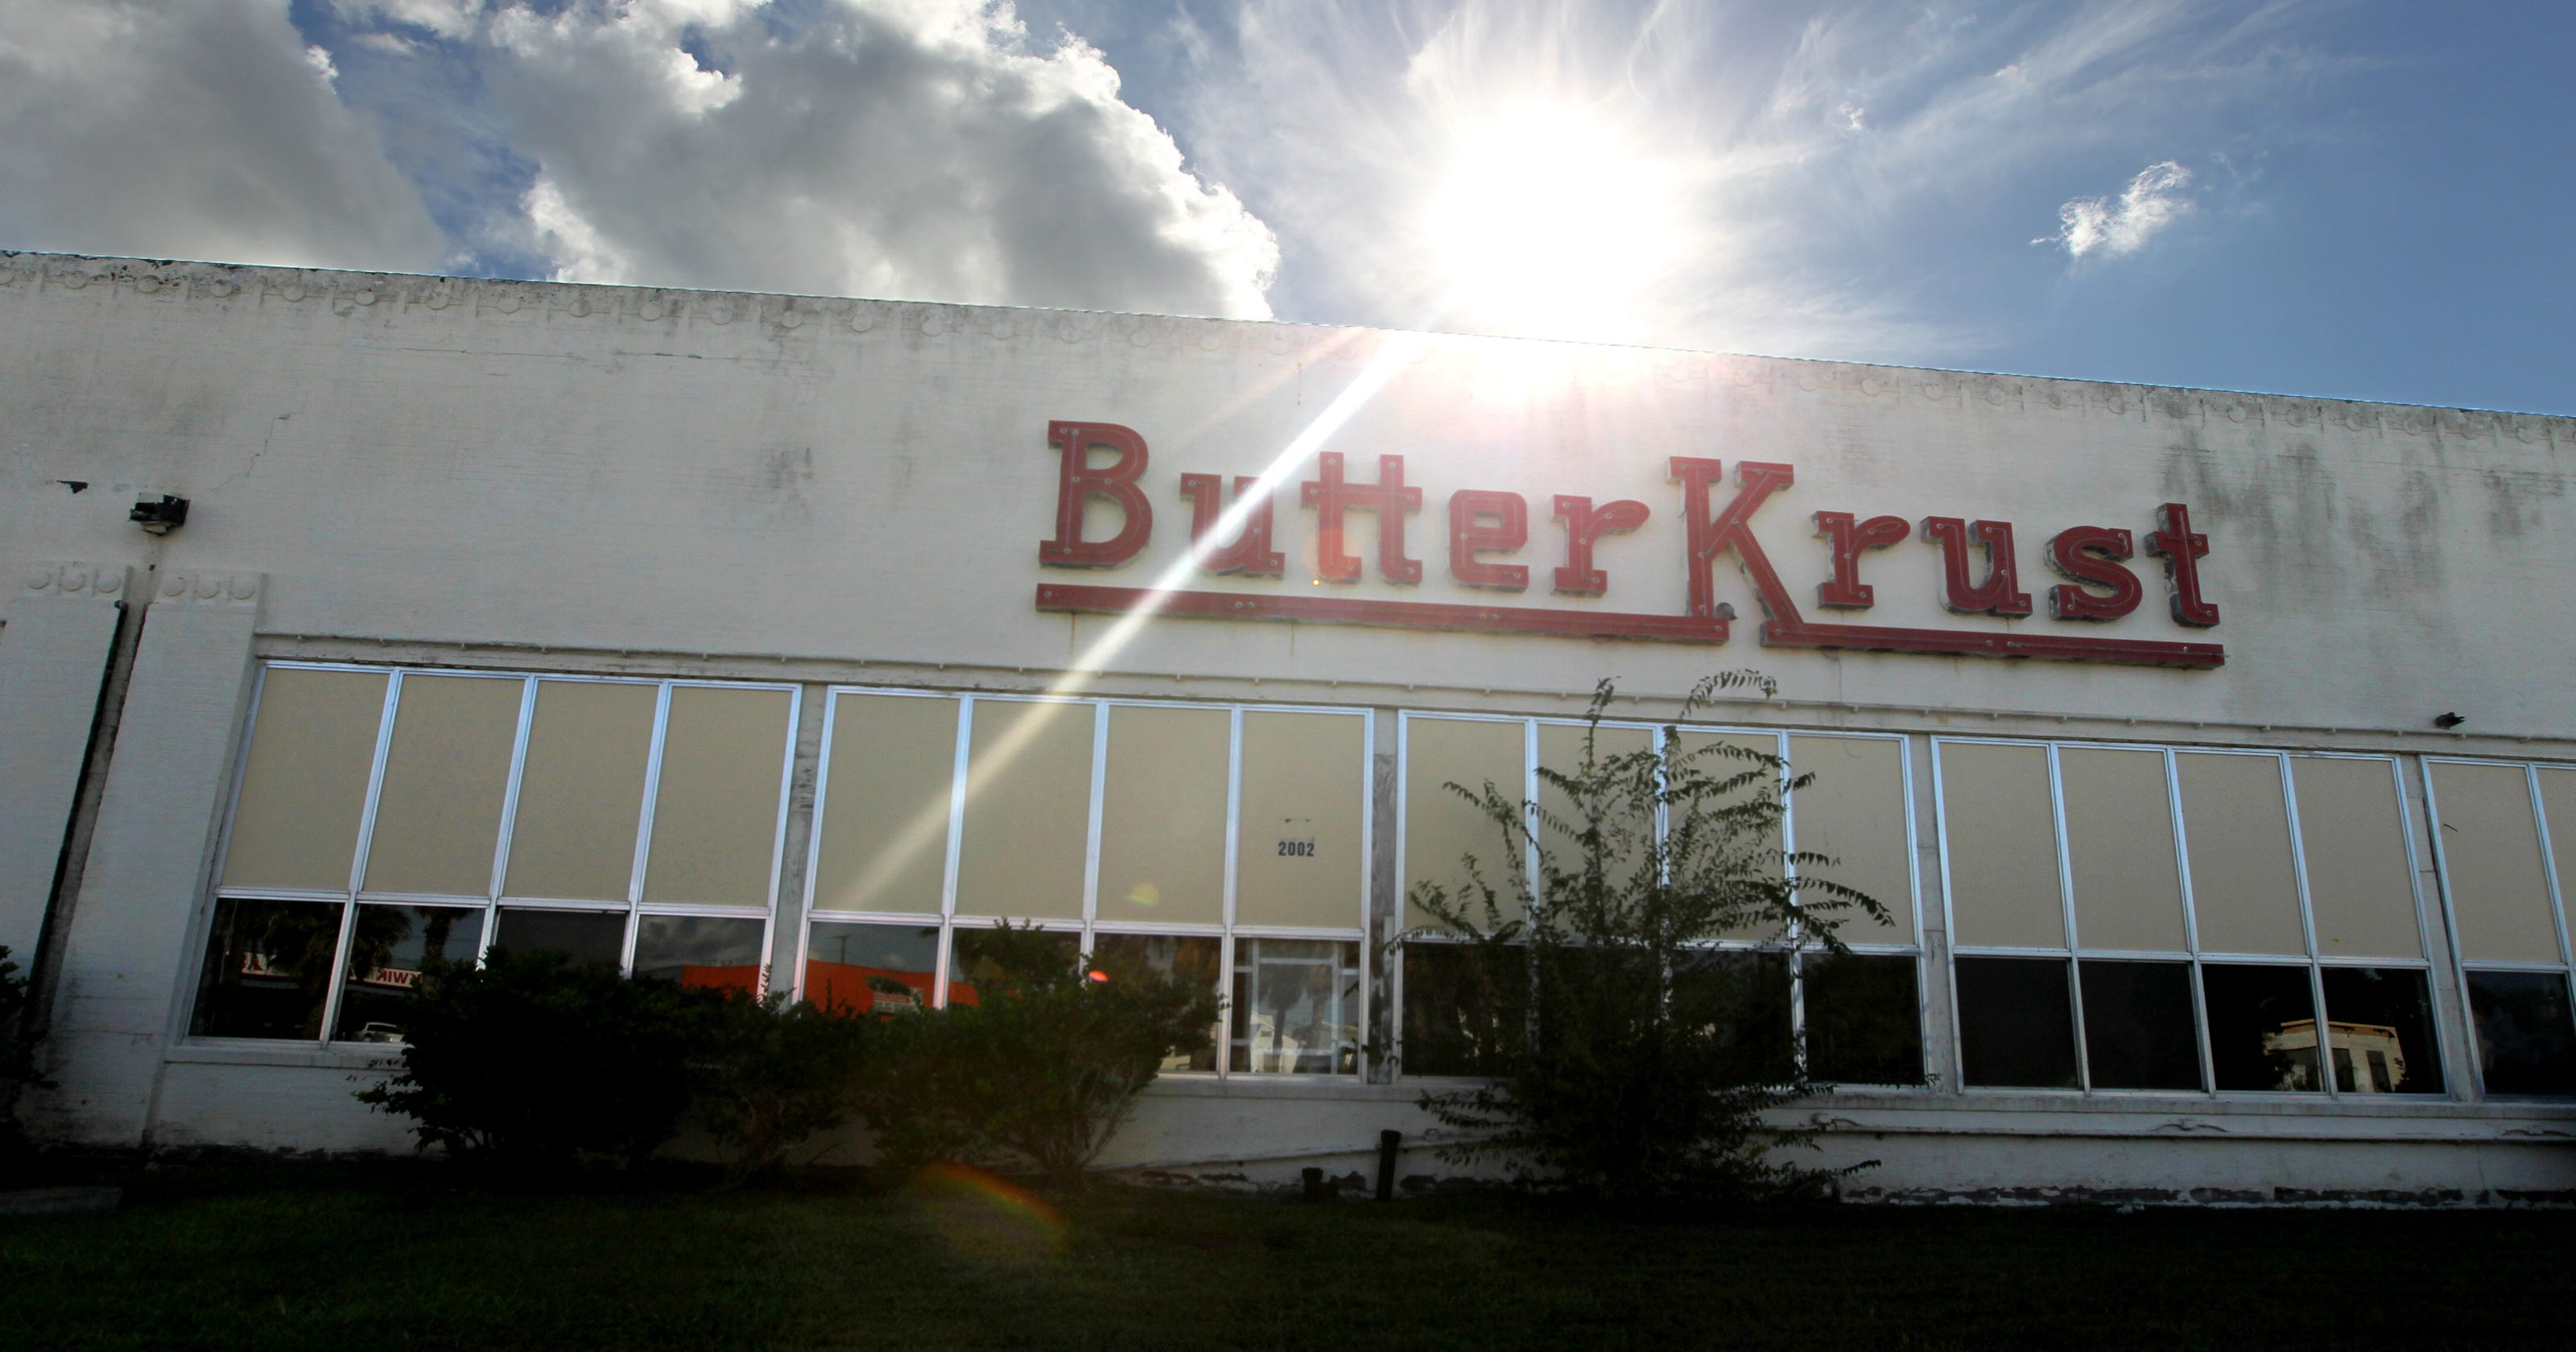 Corpus Christi S Butter Krust Building Will No Longer Sit